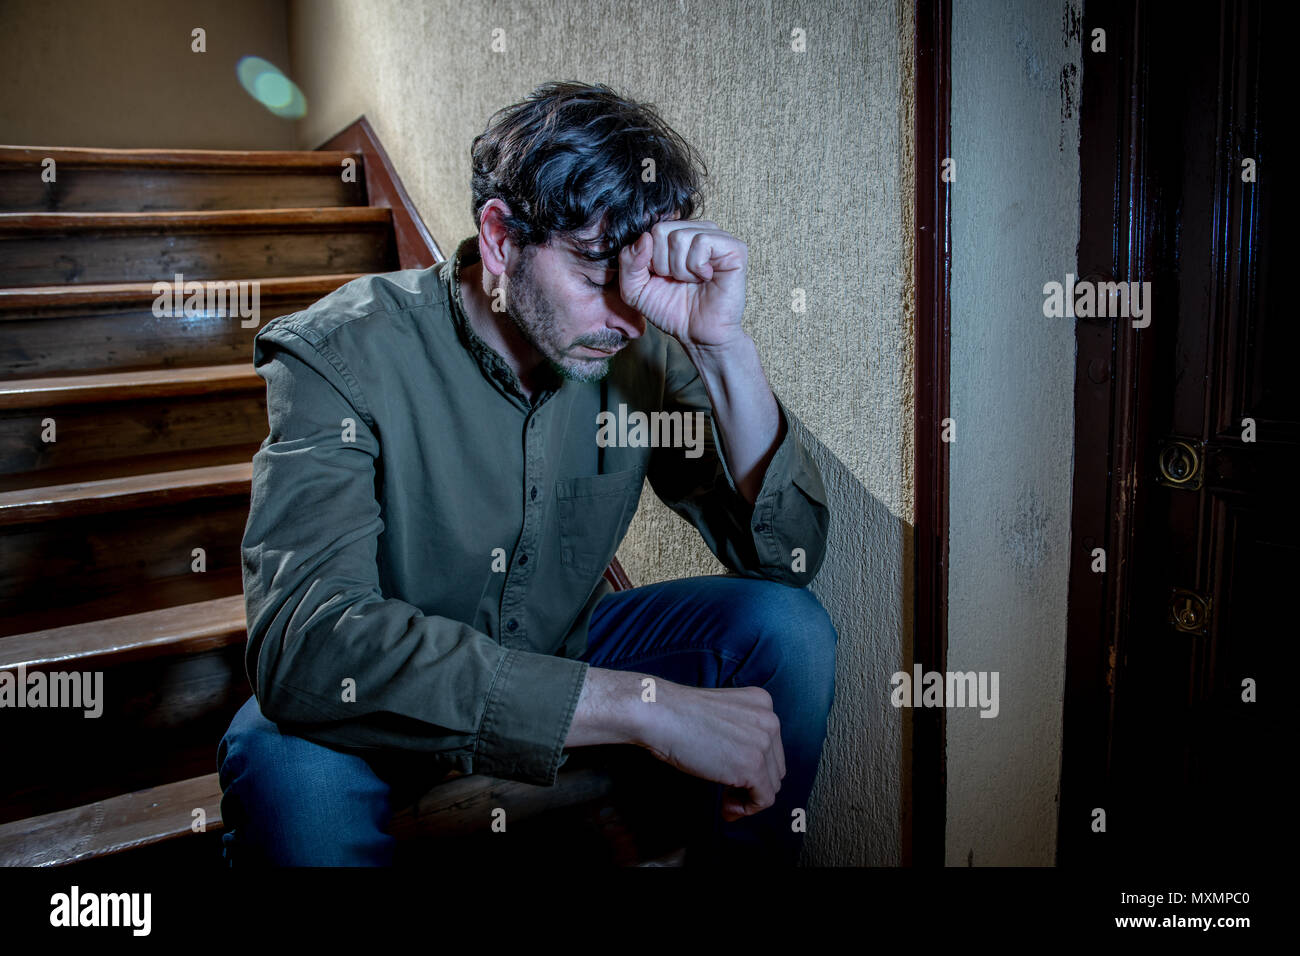 depressed latin man sitting head in hands inside in a stairwell feeling lonely and sad and stressed about work and life in a mental health concept - Stock Image